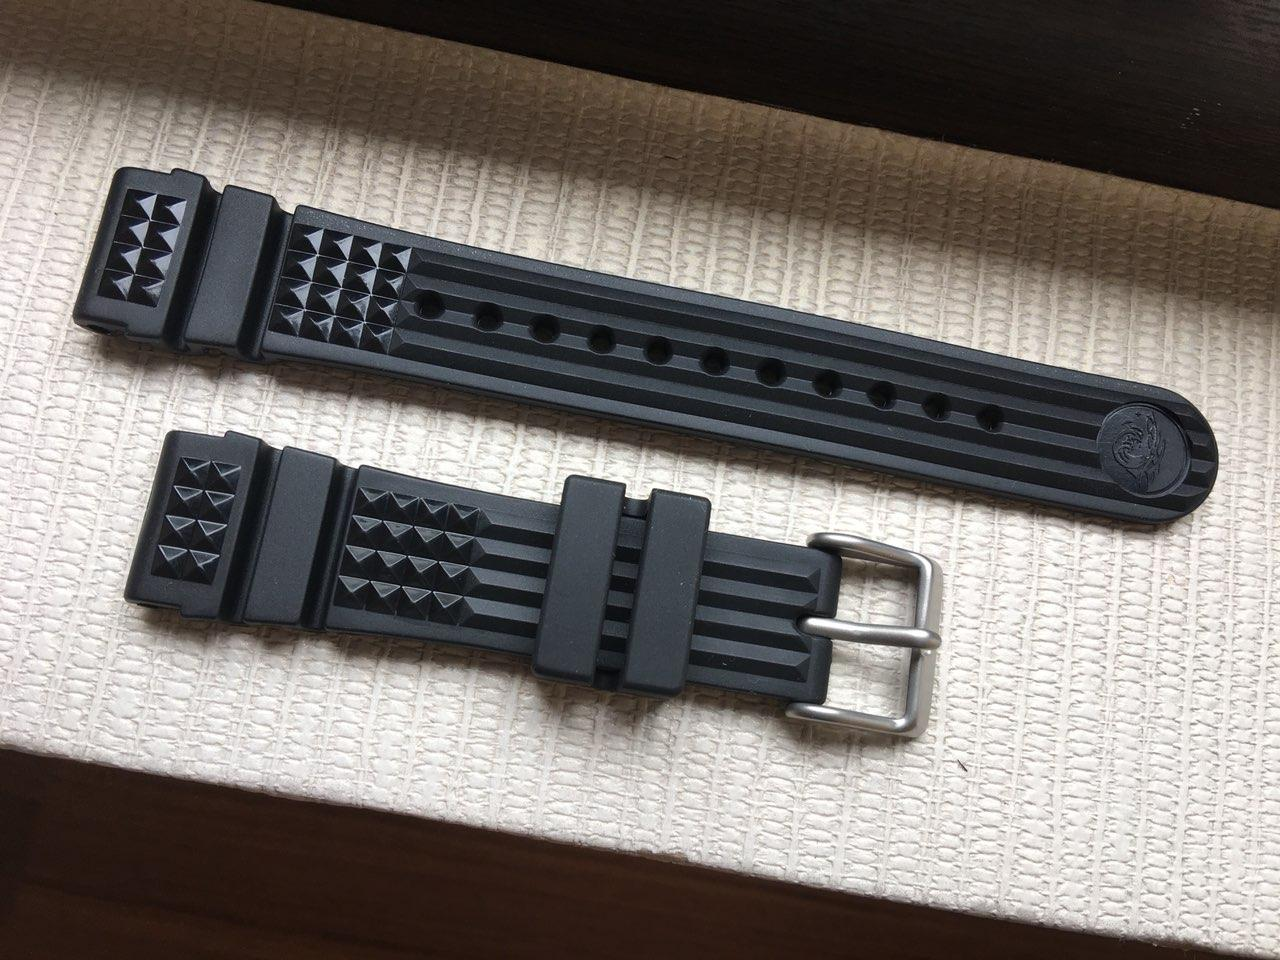 Original Seiko MM300 Marine Master Waffle Strap 20mm (Fits MM300 and other  20mm band diver watches like SPB051 053 077 079 081, SBDC051 053)